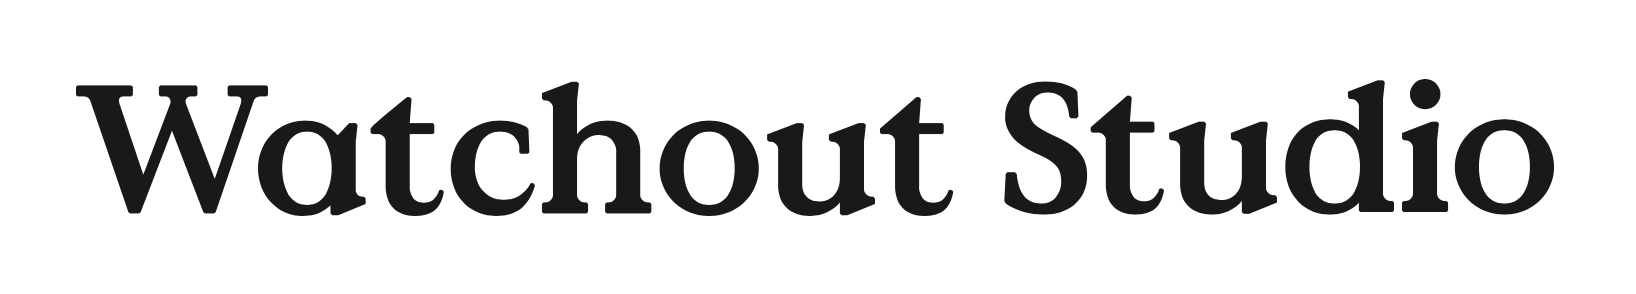 Watchout Studio logo